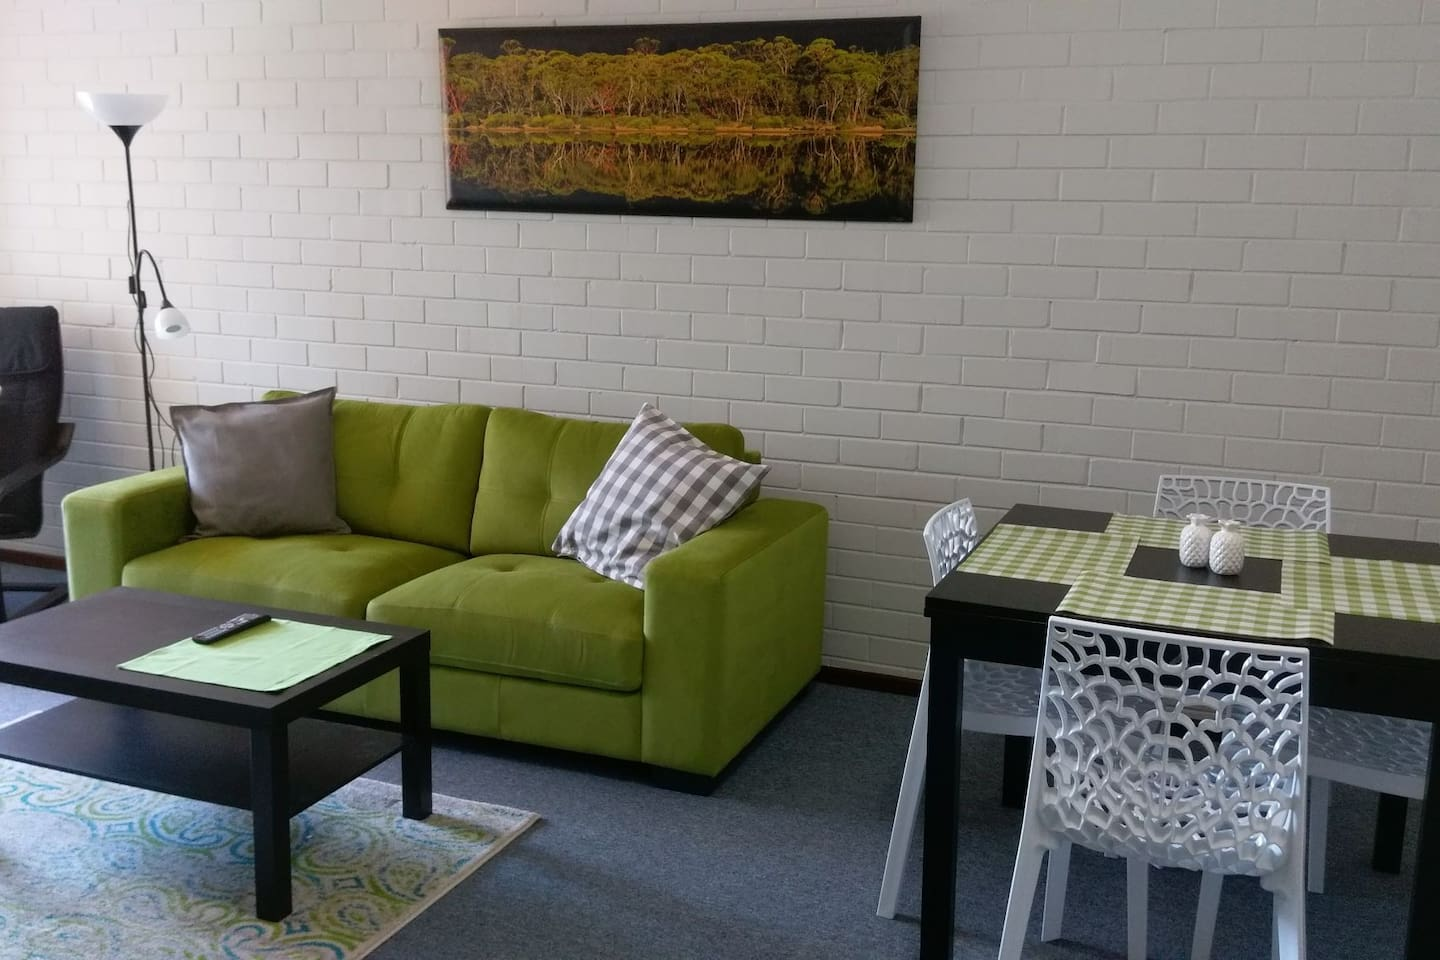 Another of our Apartments, photography by local photographer Lynn Webb (Gallery of Splendid Isolation) www.lynnwebb.com.au